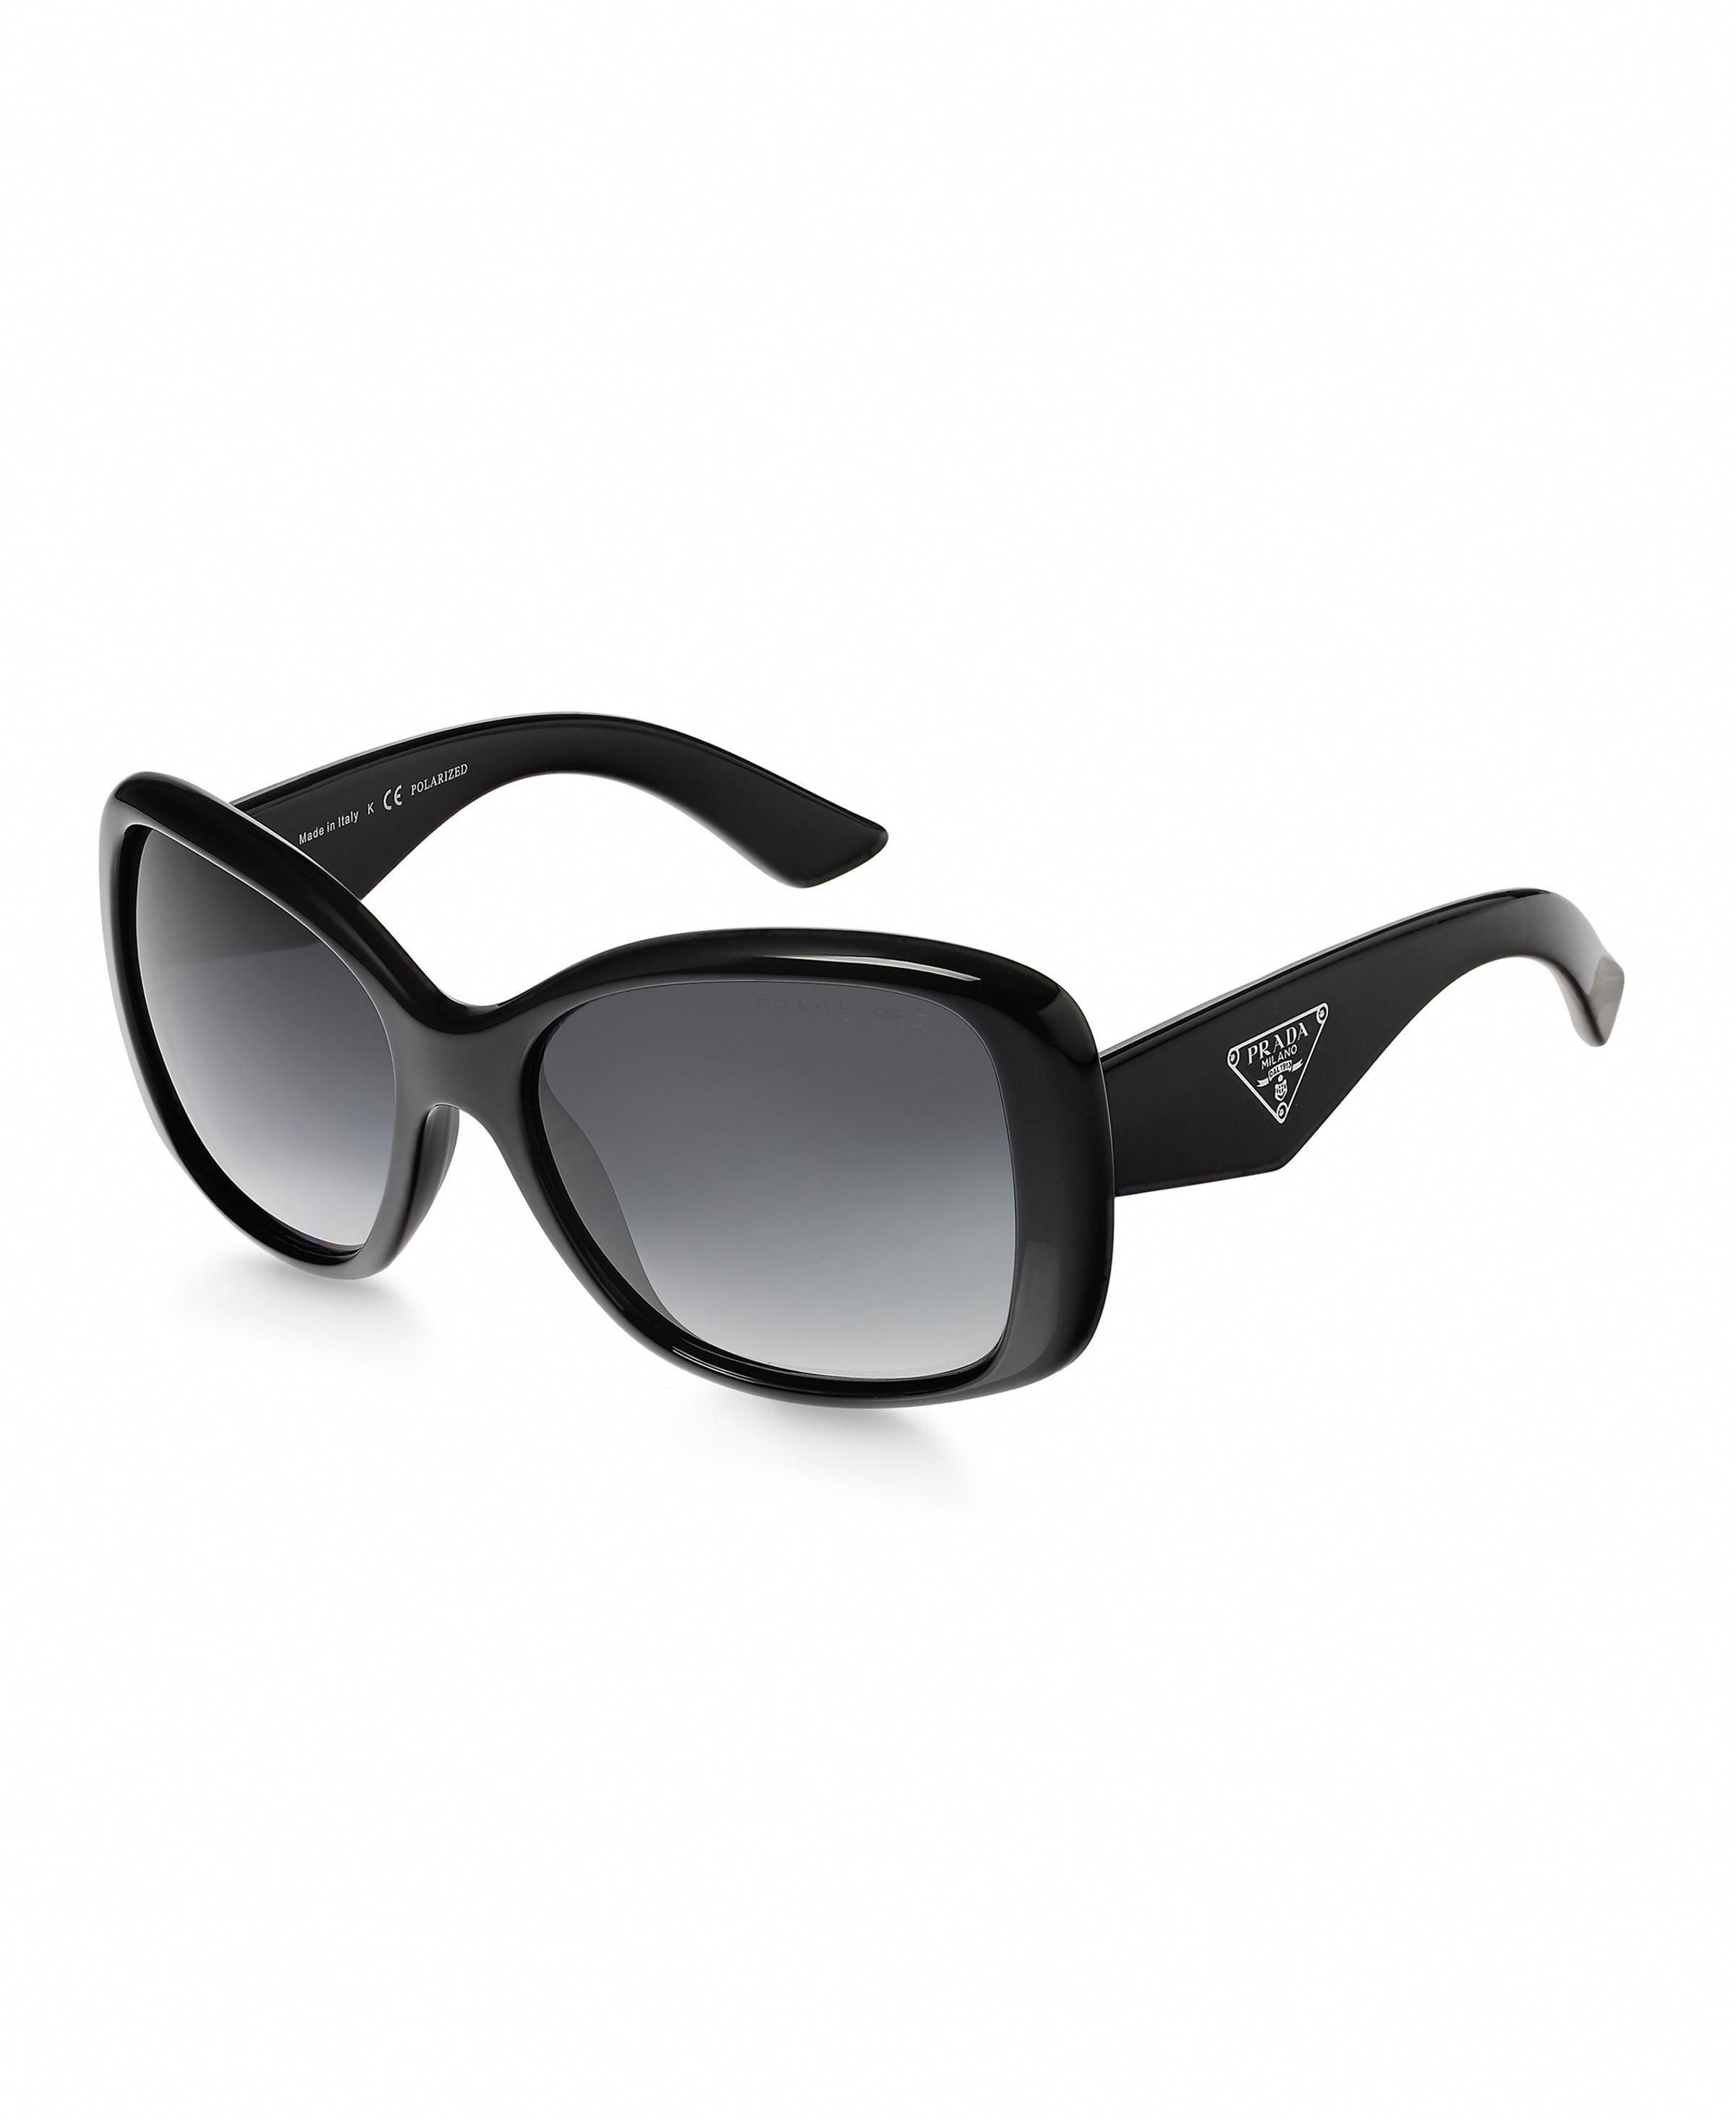 silver flash ray bans